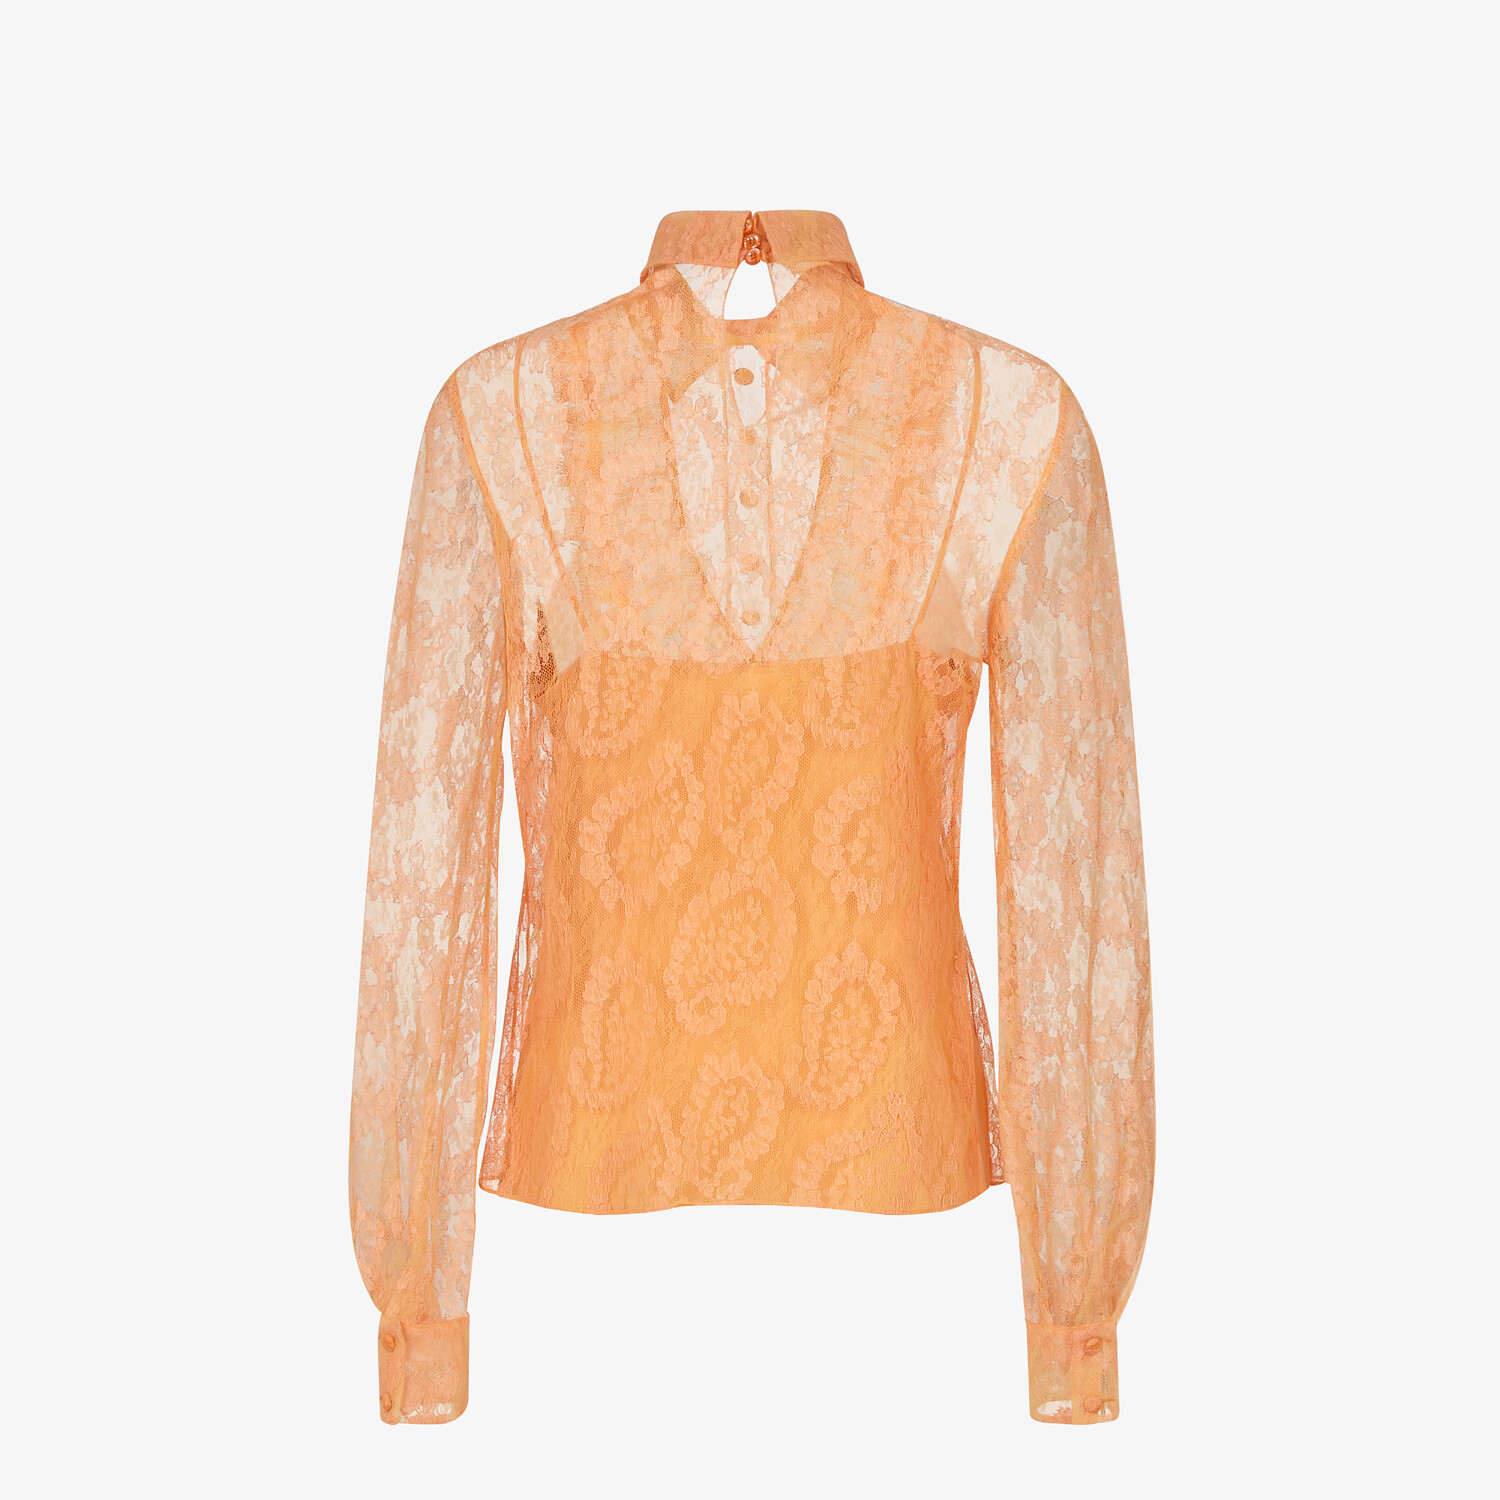 FENDI SHIRT - Orange lace blouse - view 2 detail